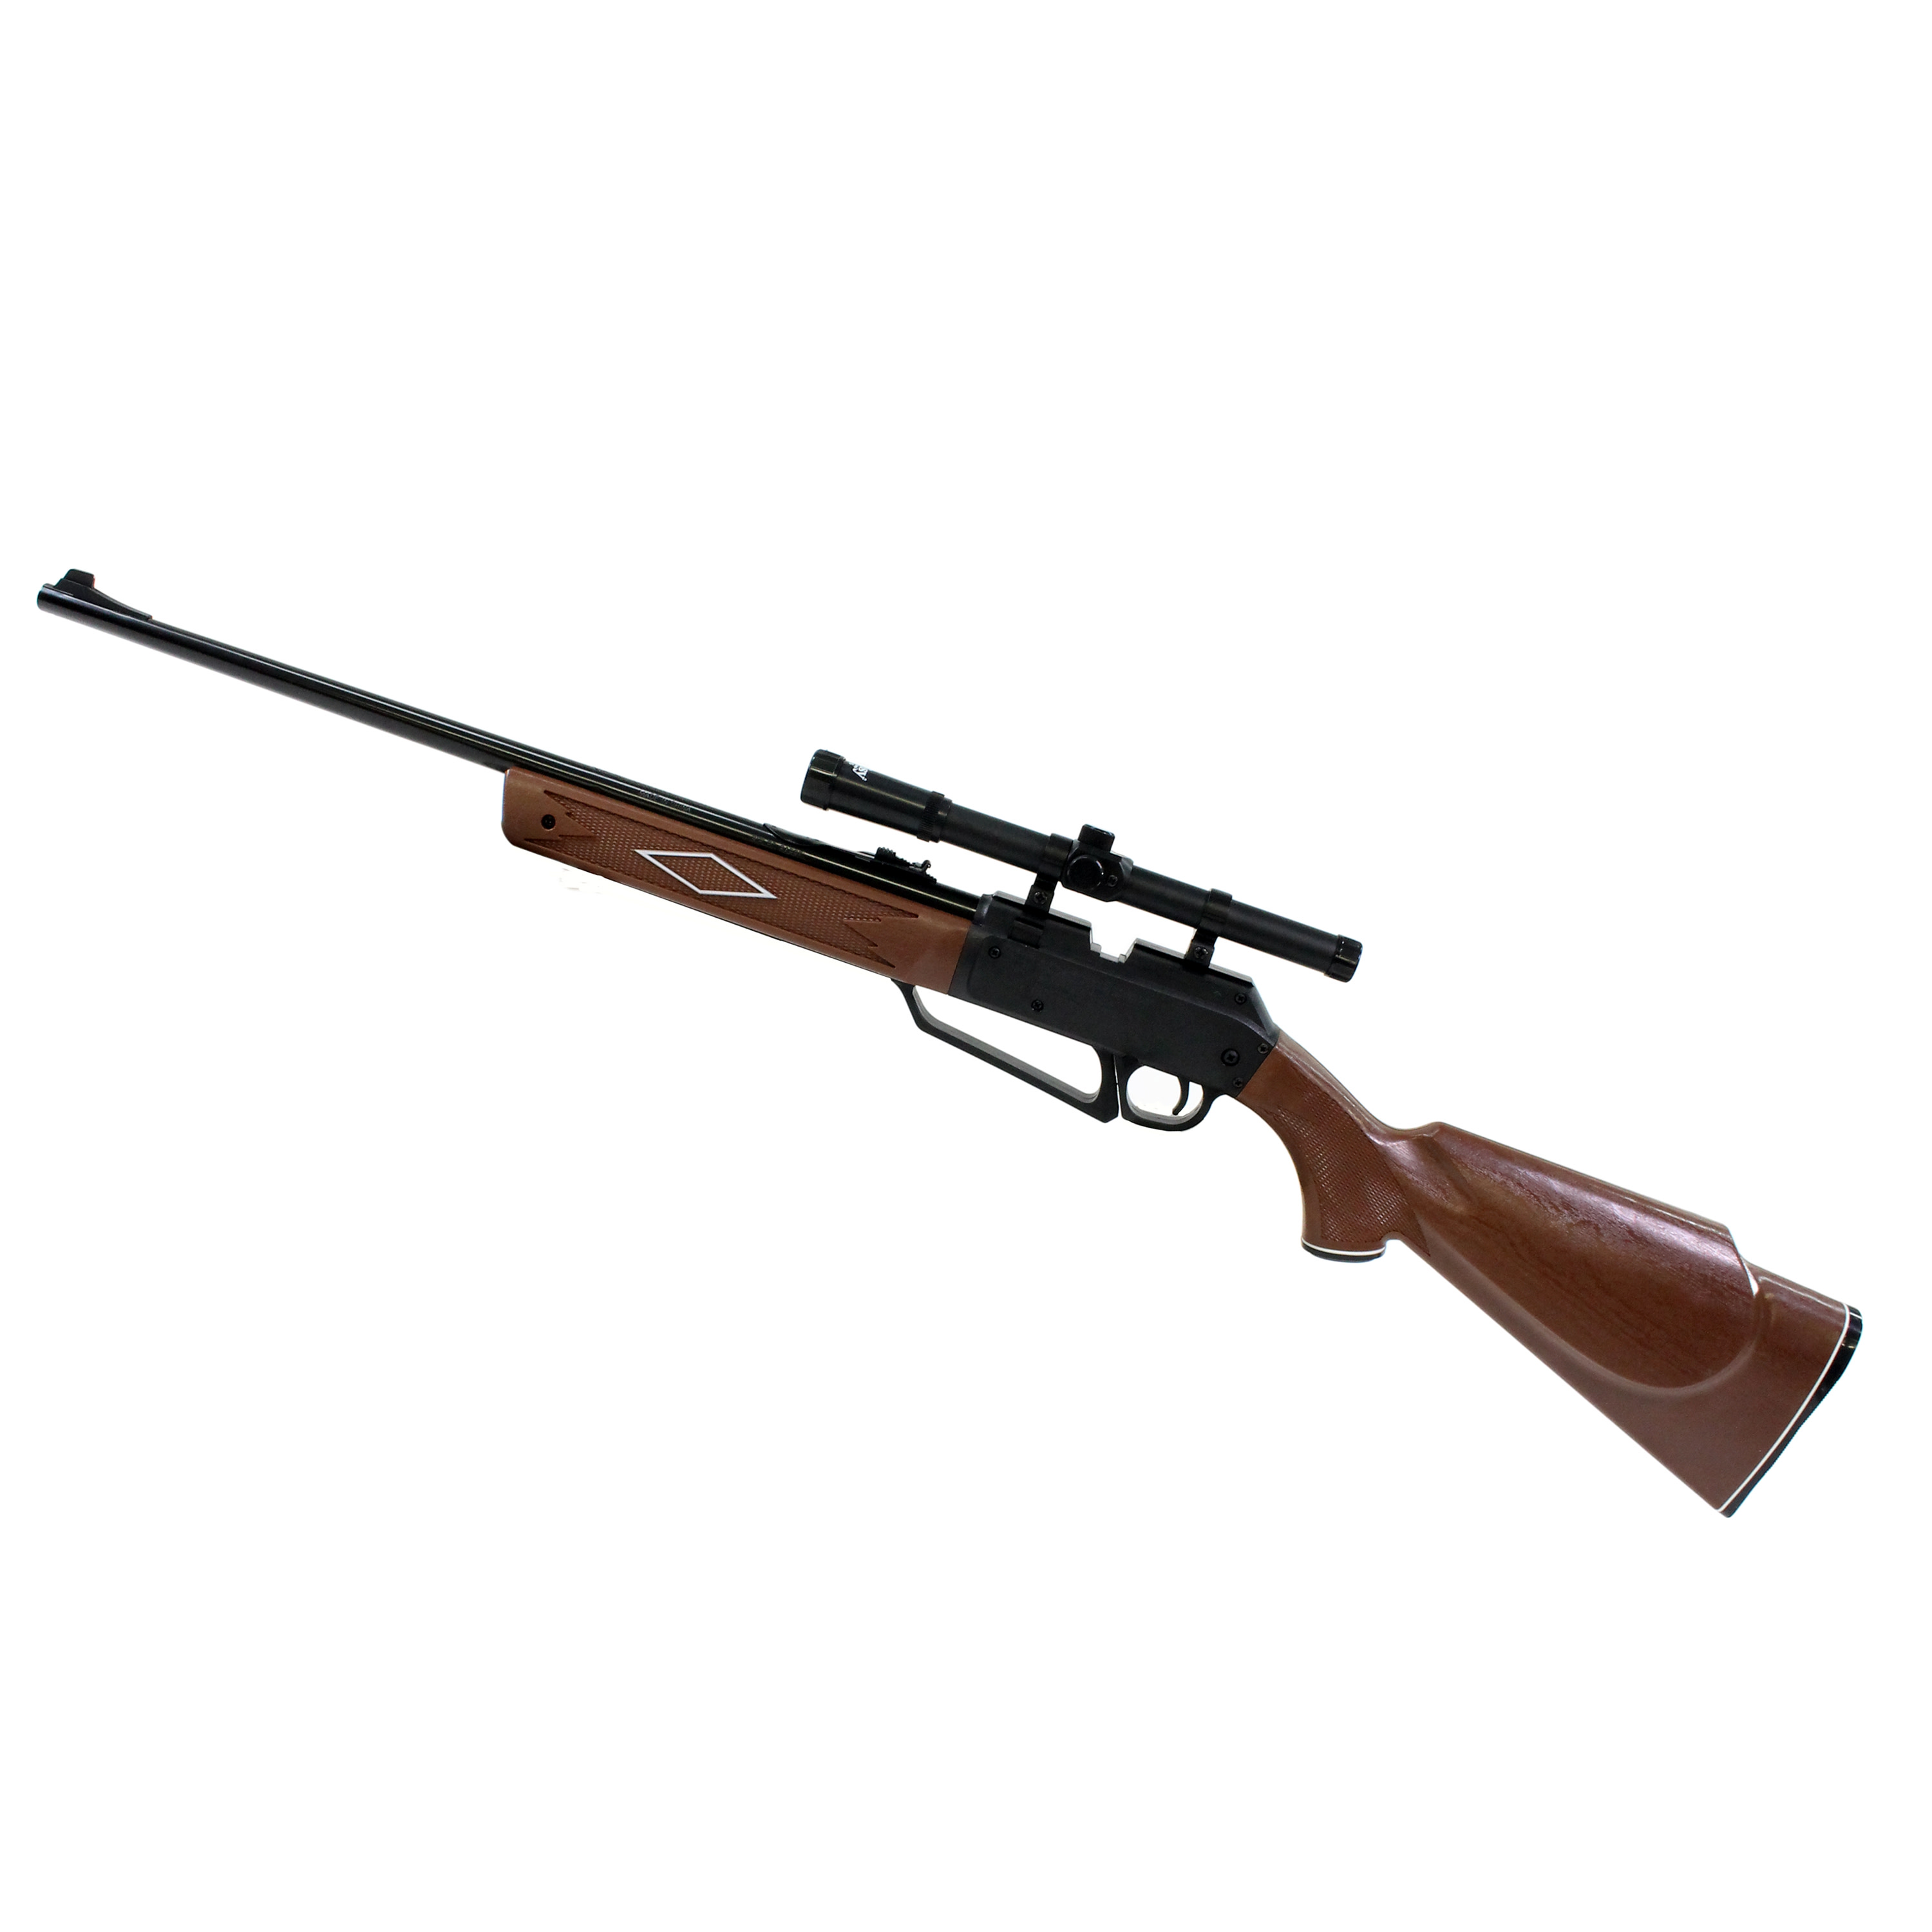 Daisy 880S Air Rifle Multi-Pump Pneumatic Bolt Action .177 Pellet/BB with 4x15mm scope